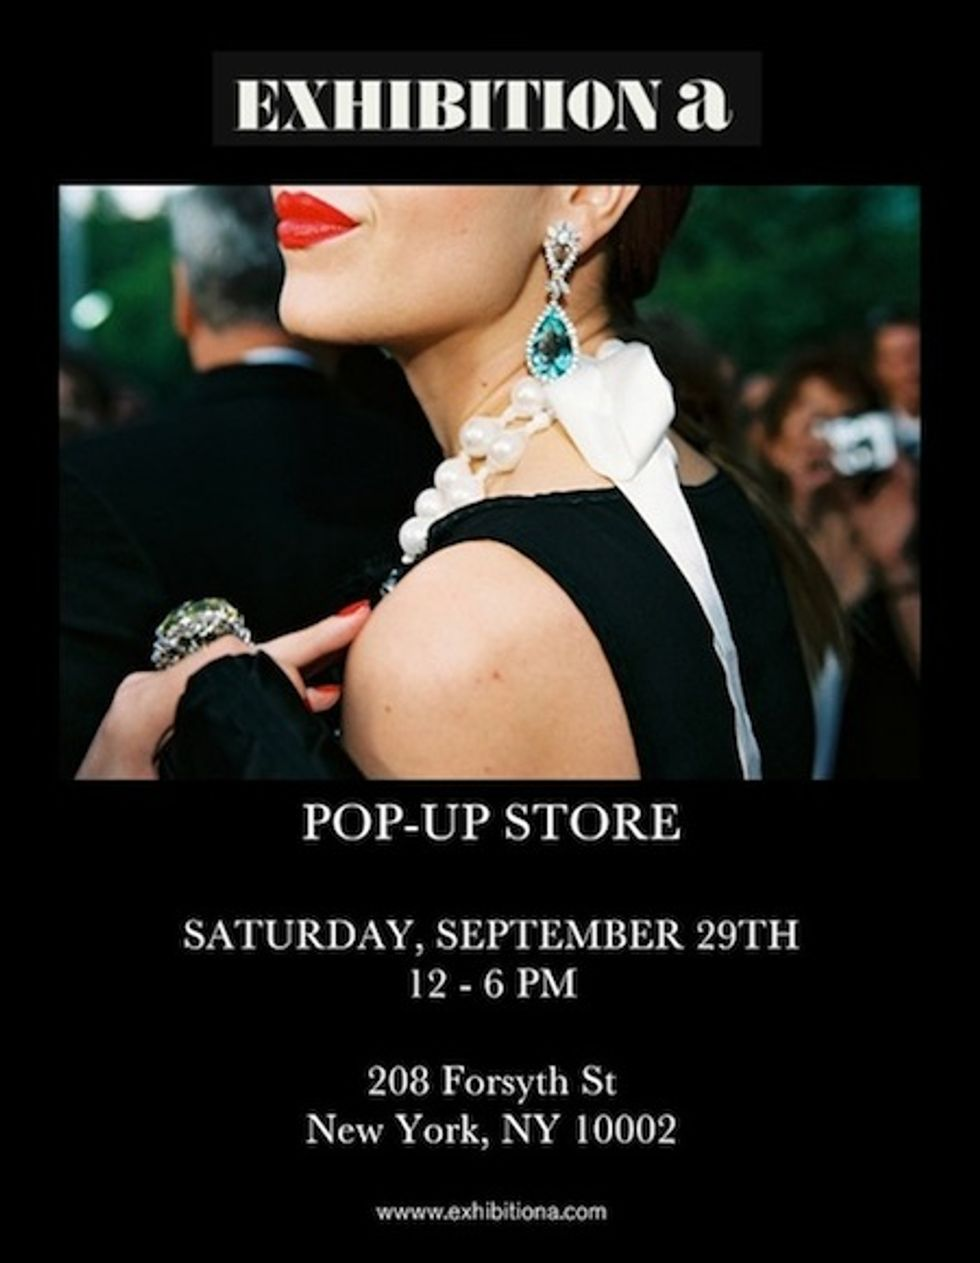 Exhibition A's Pop-Up Store Is Coming This Weekend